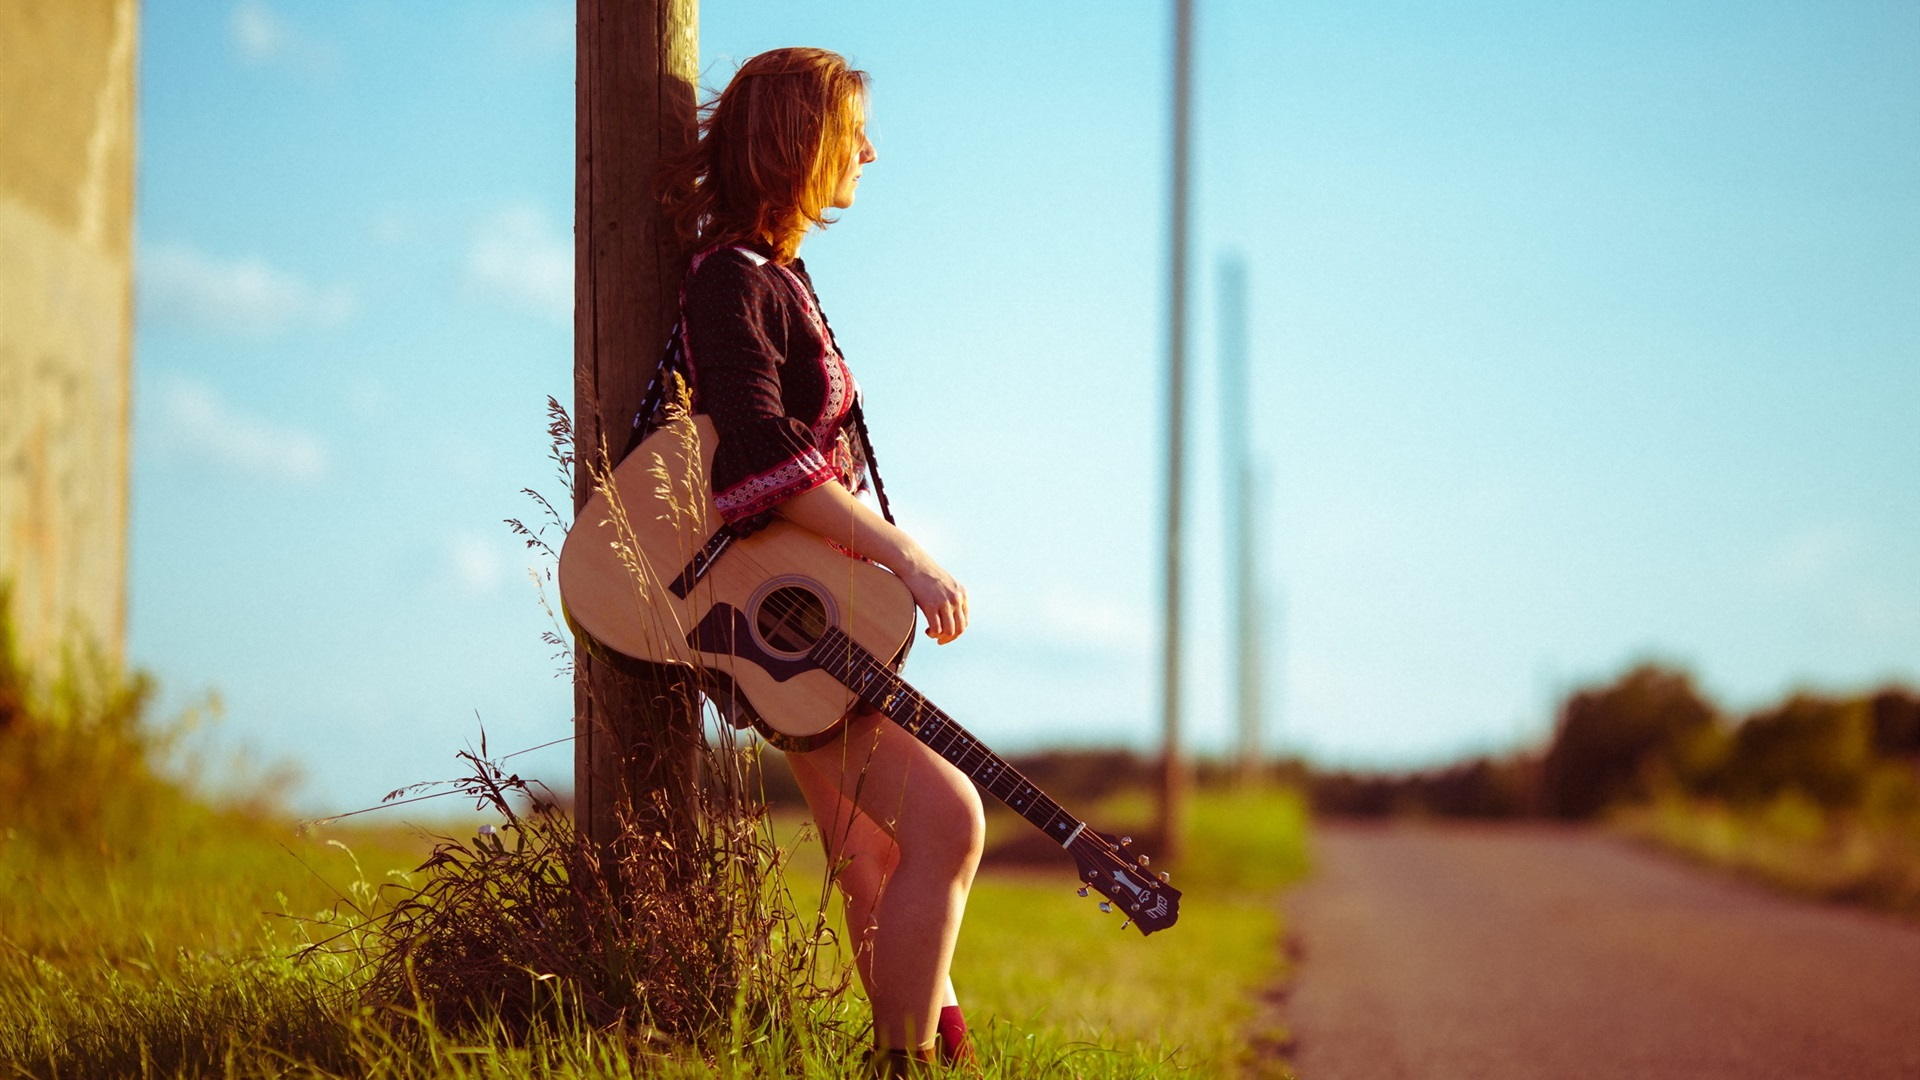 Download Wallpaper 1920x1080 Girl, road, guitar Full HD ...